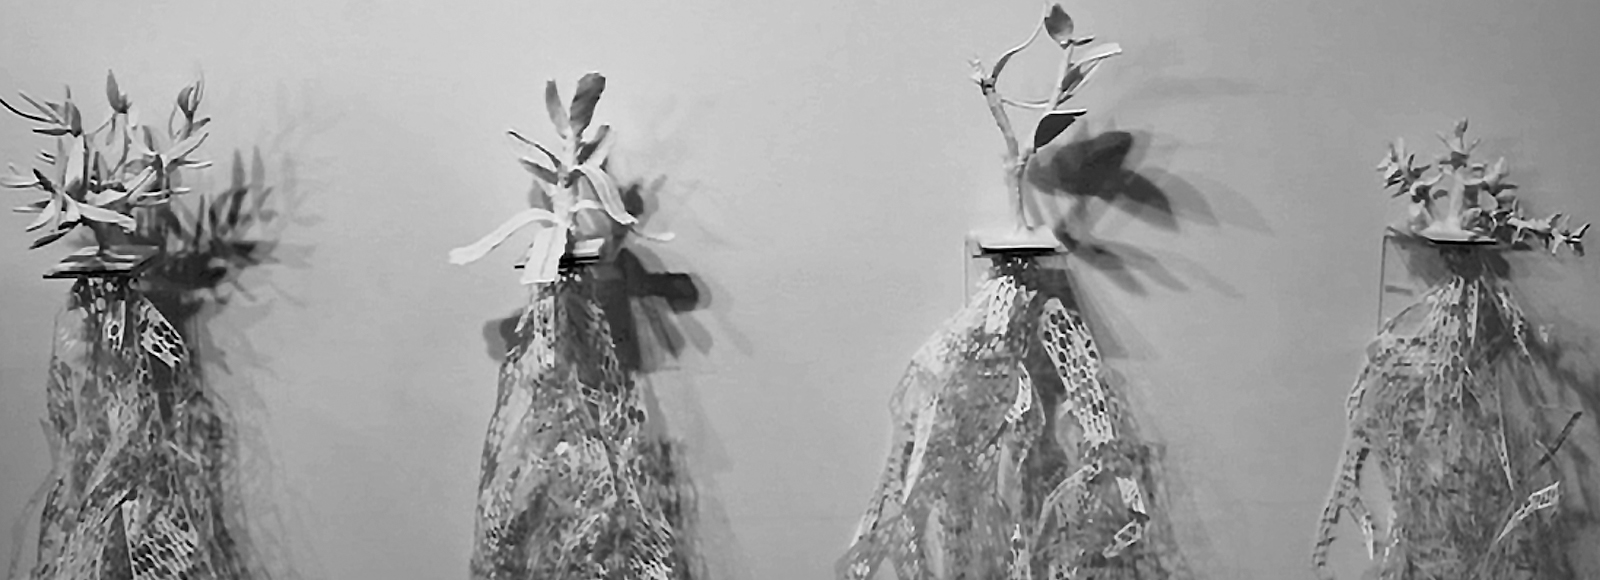 Kate Dunn and Graham Clarkson, Pattern Symbiosis, from video still, 2013